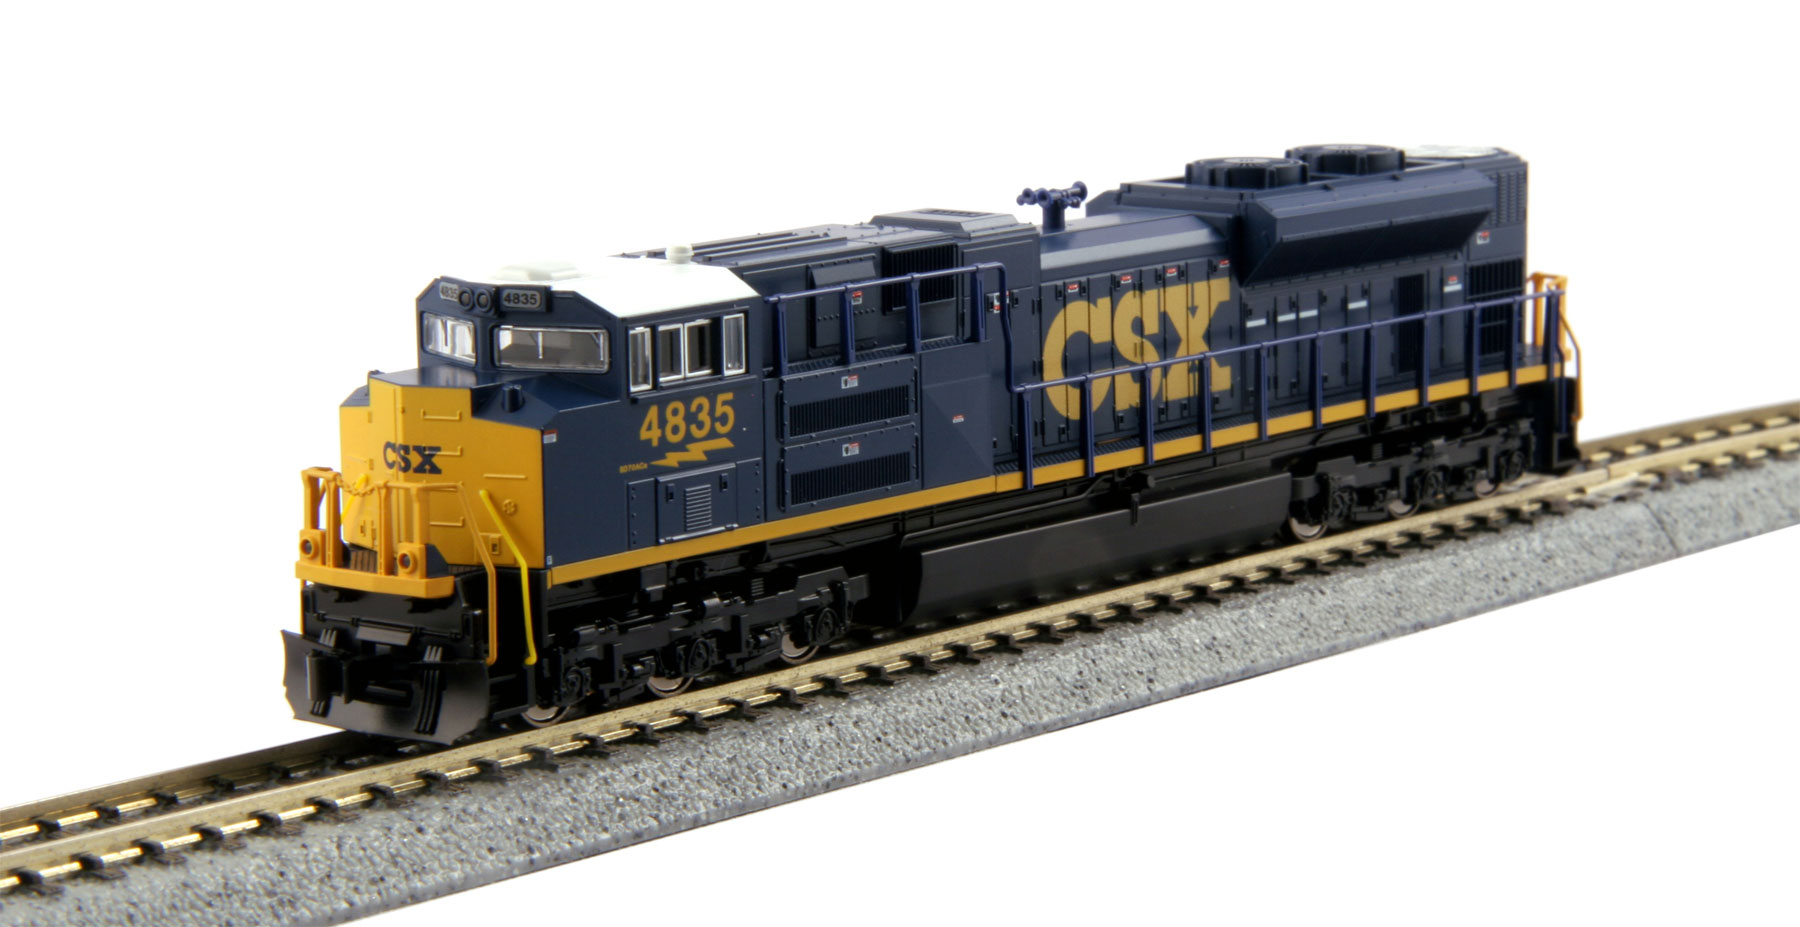 (N) SD70ACe CSX Dark Future #4835